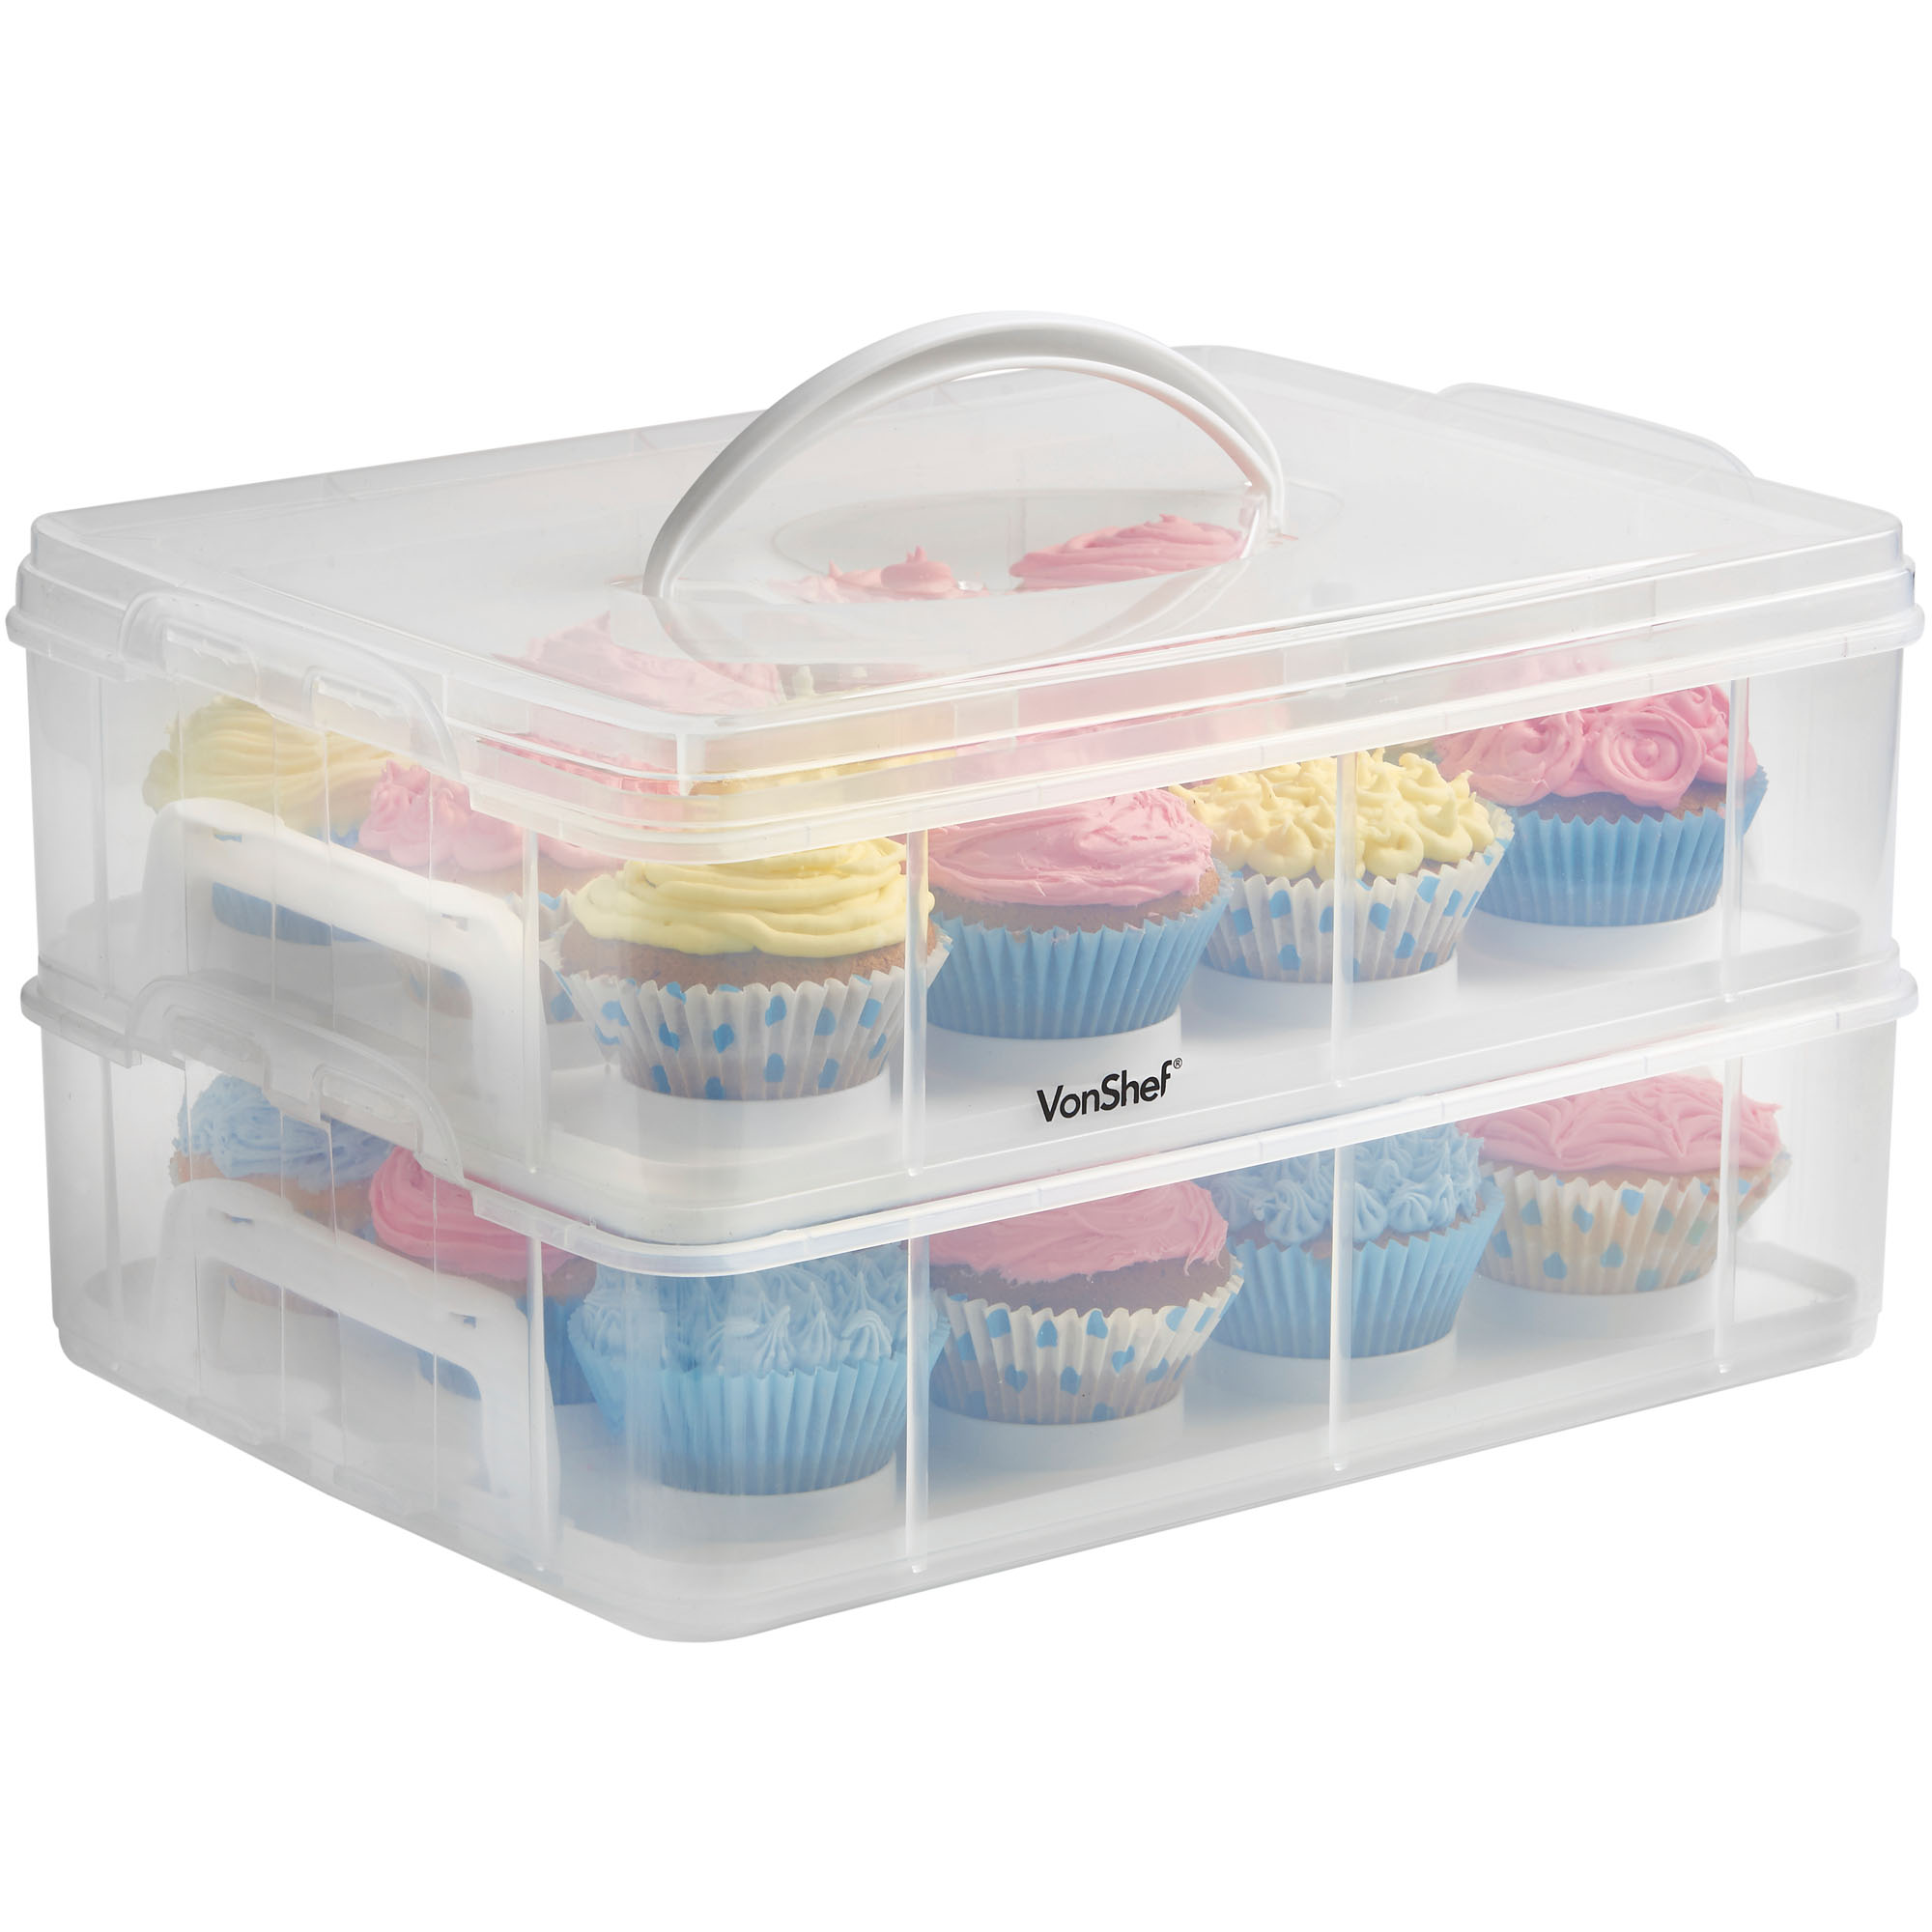 Cupcake Canisters For Kitchen: VonShef 2 Tier Locking 24 Cupcake Holder Caddy & Cake